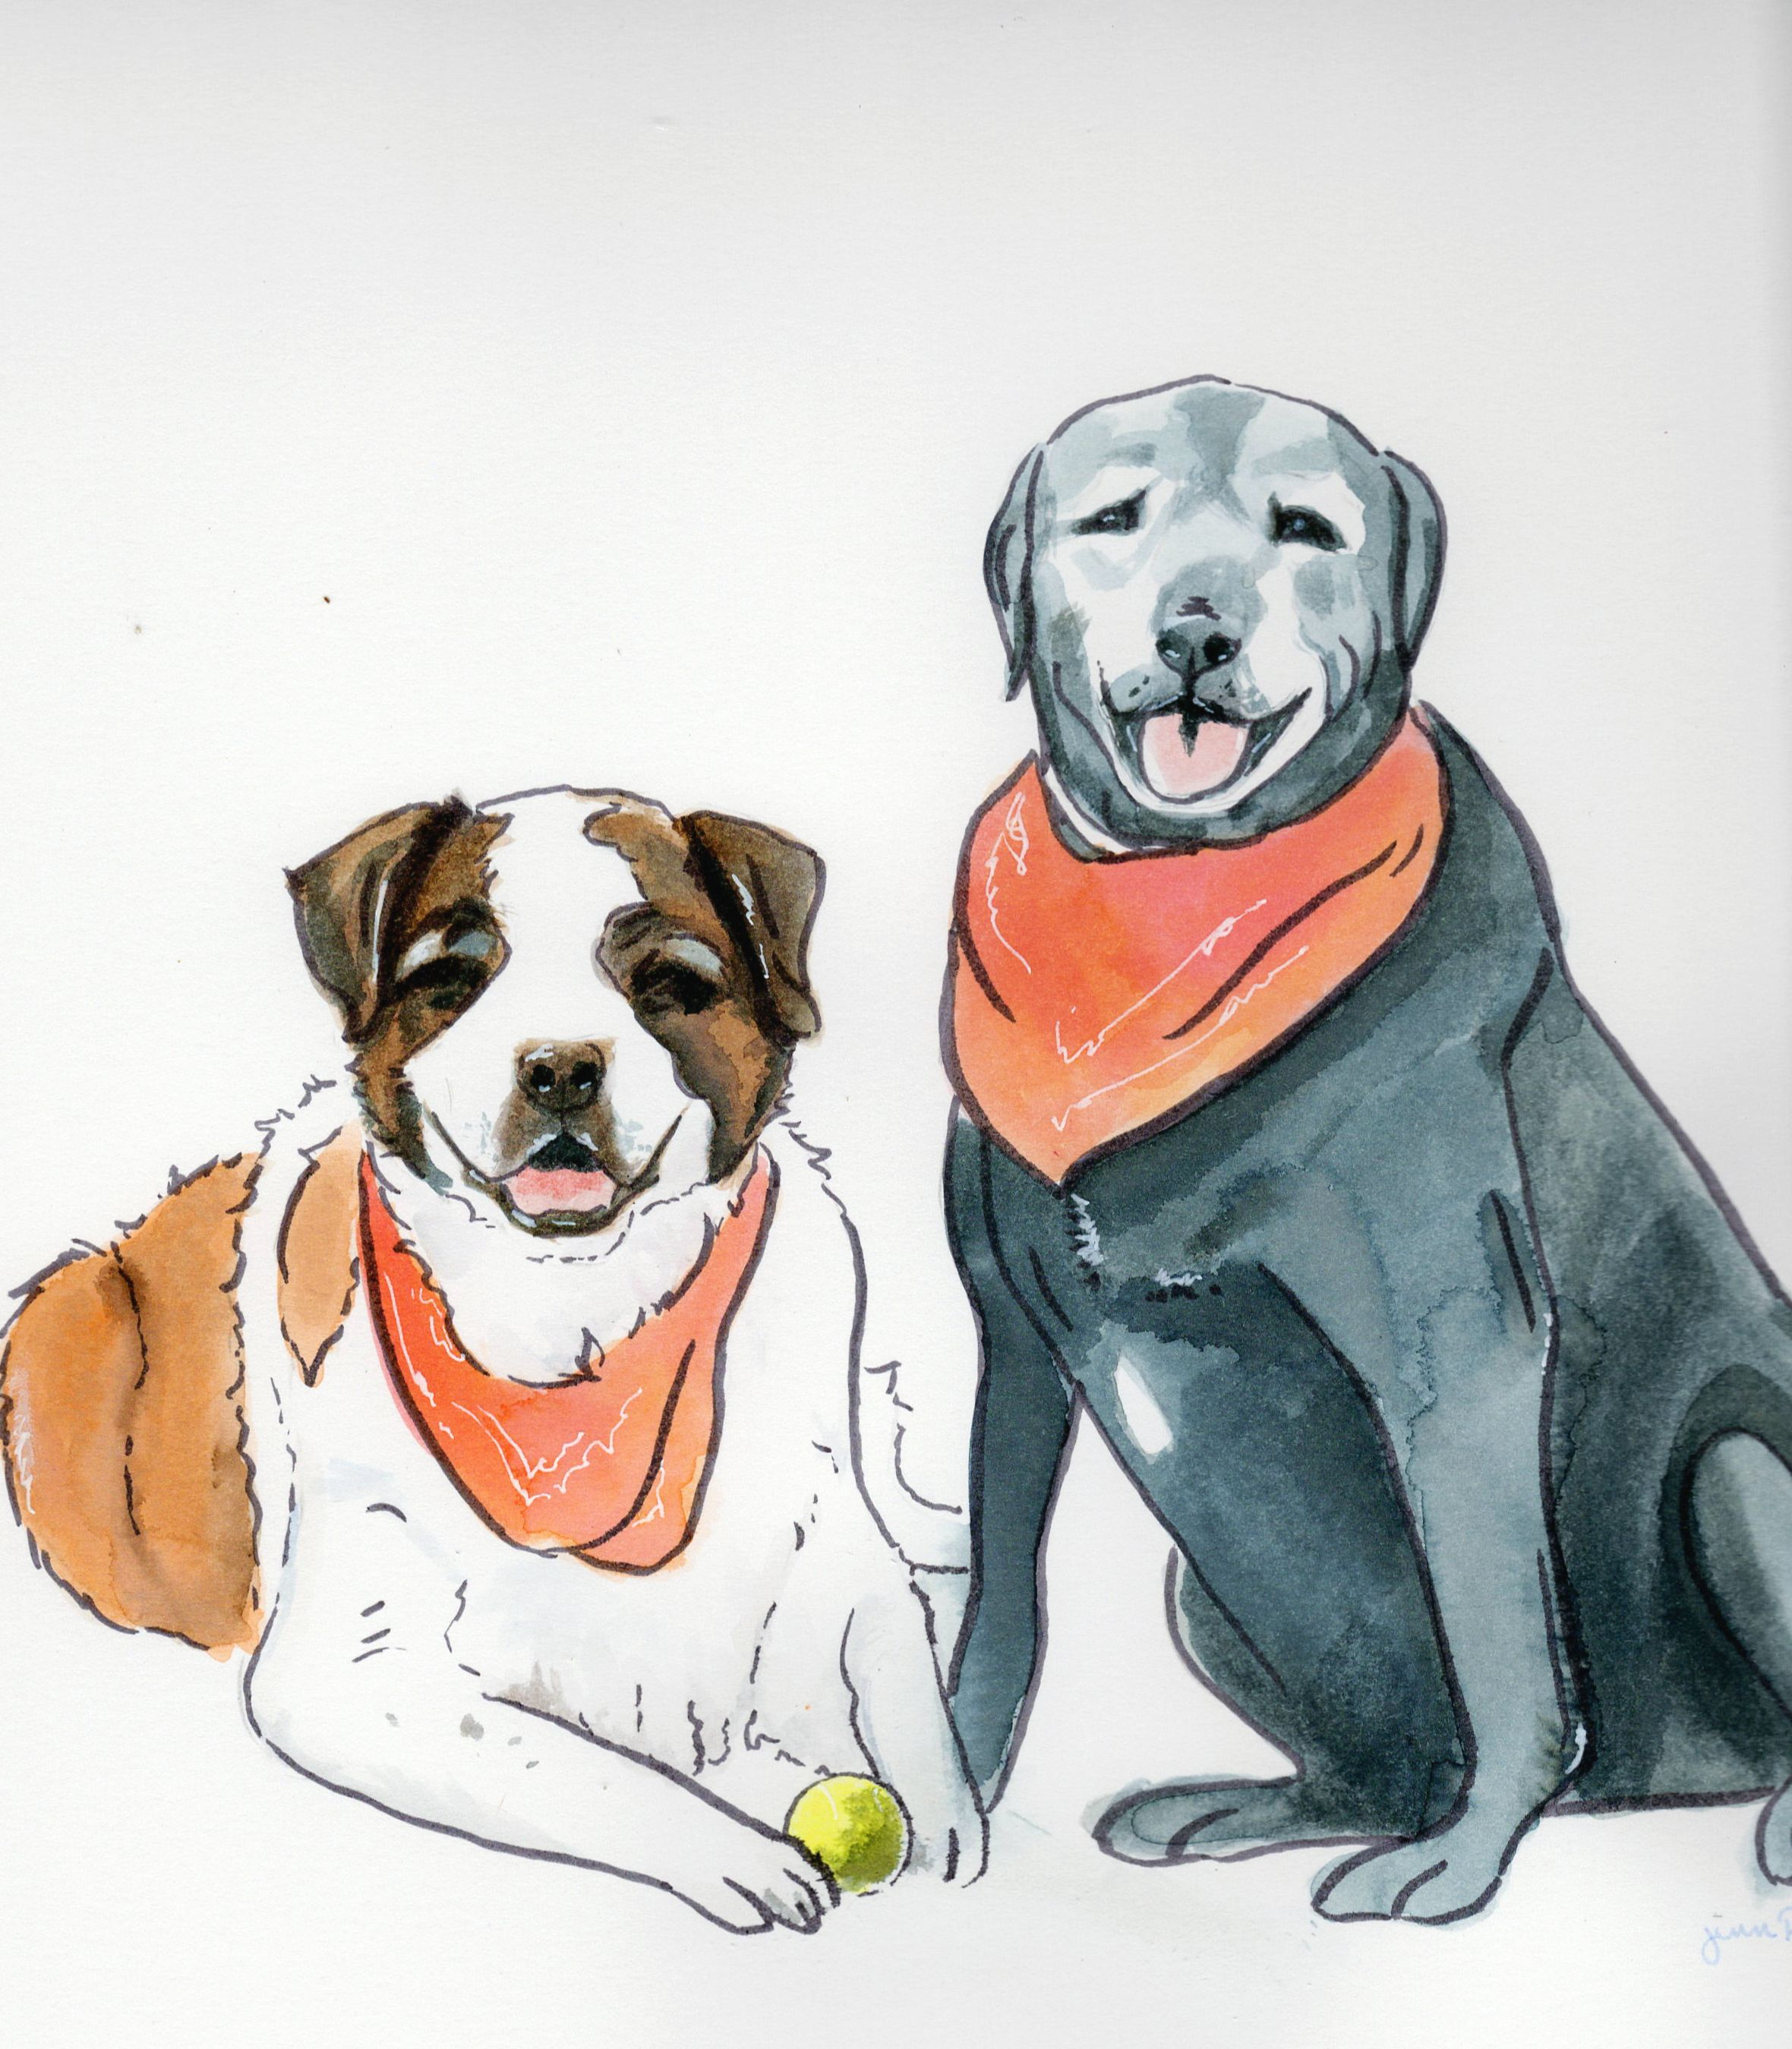 Saint Bernard and Black Lab pet portrait done in minimalist style